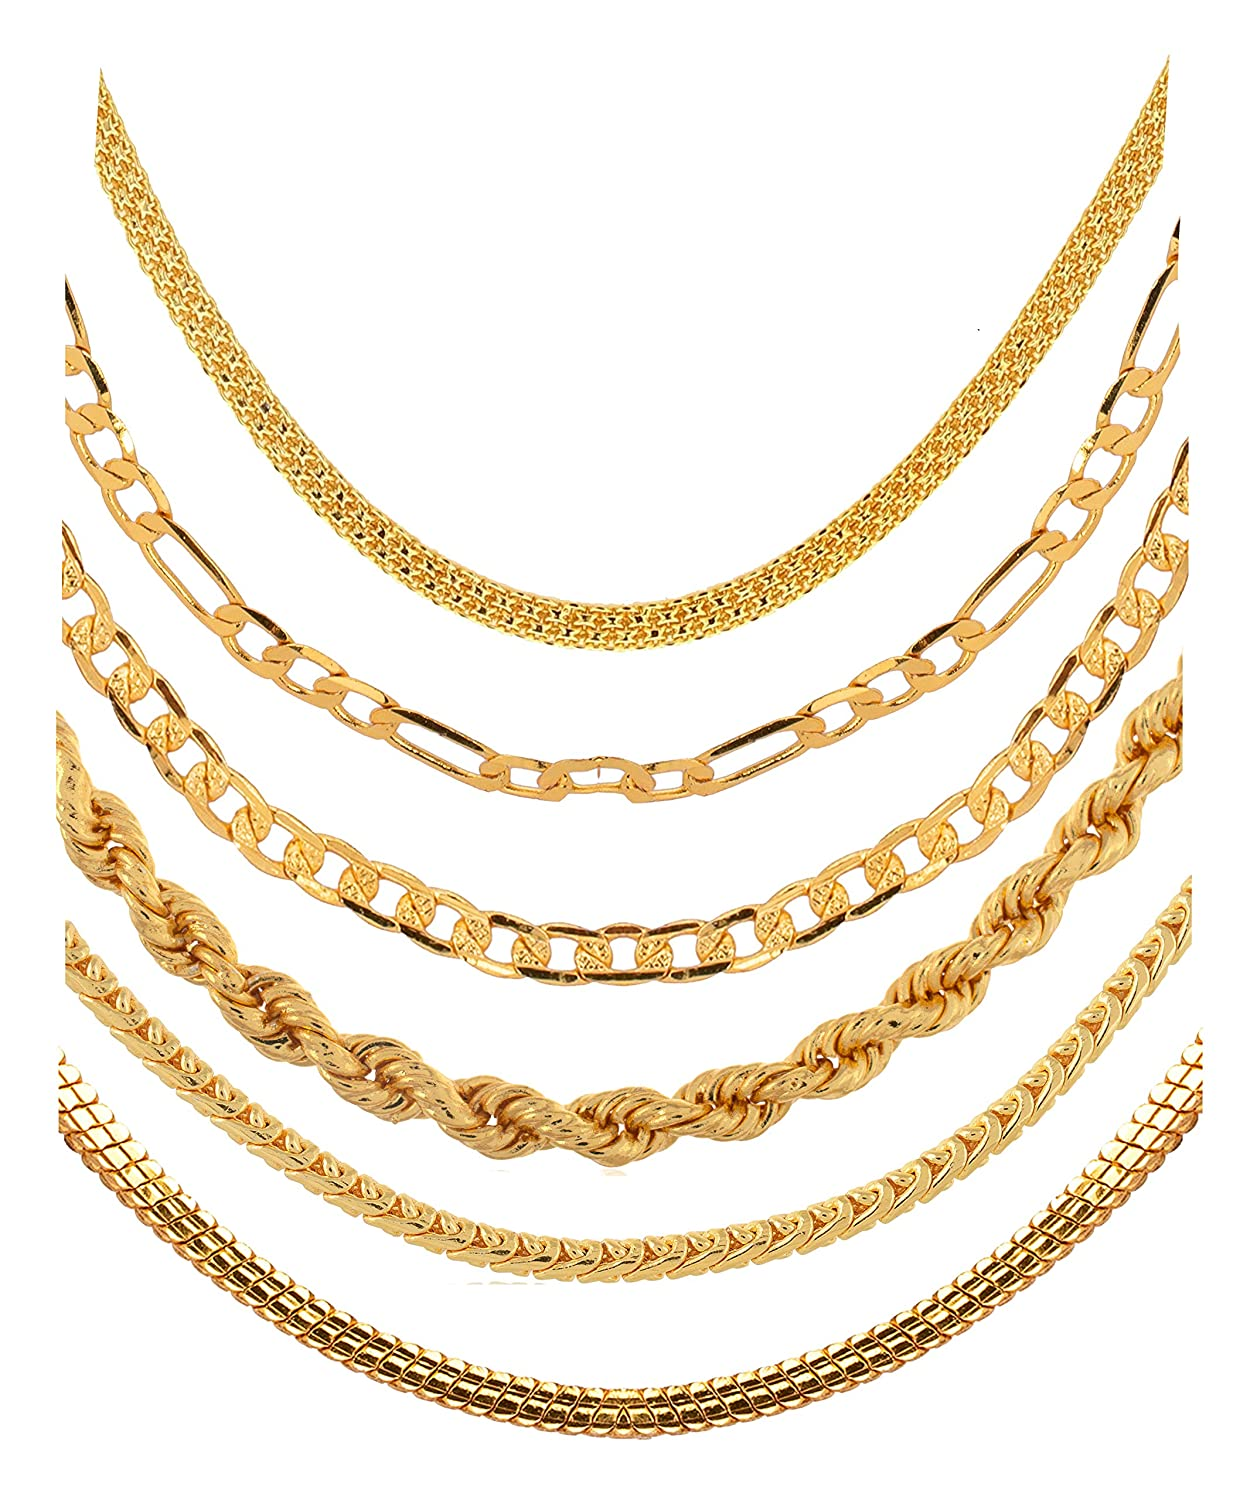 265195adda8 AanyaCentric Golden Heavy and Long Gold-Plated Statement Necklace/Neck  Chains Without Pendant Lockets for Men and Women -Combo Pack of 6:  Amazon.in: ...